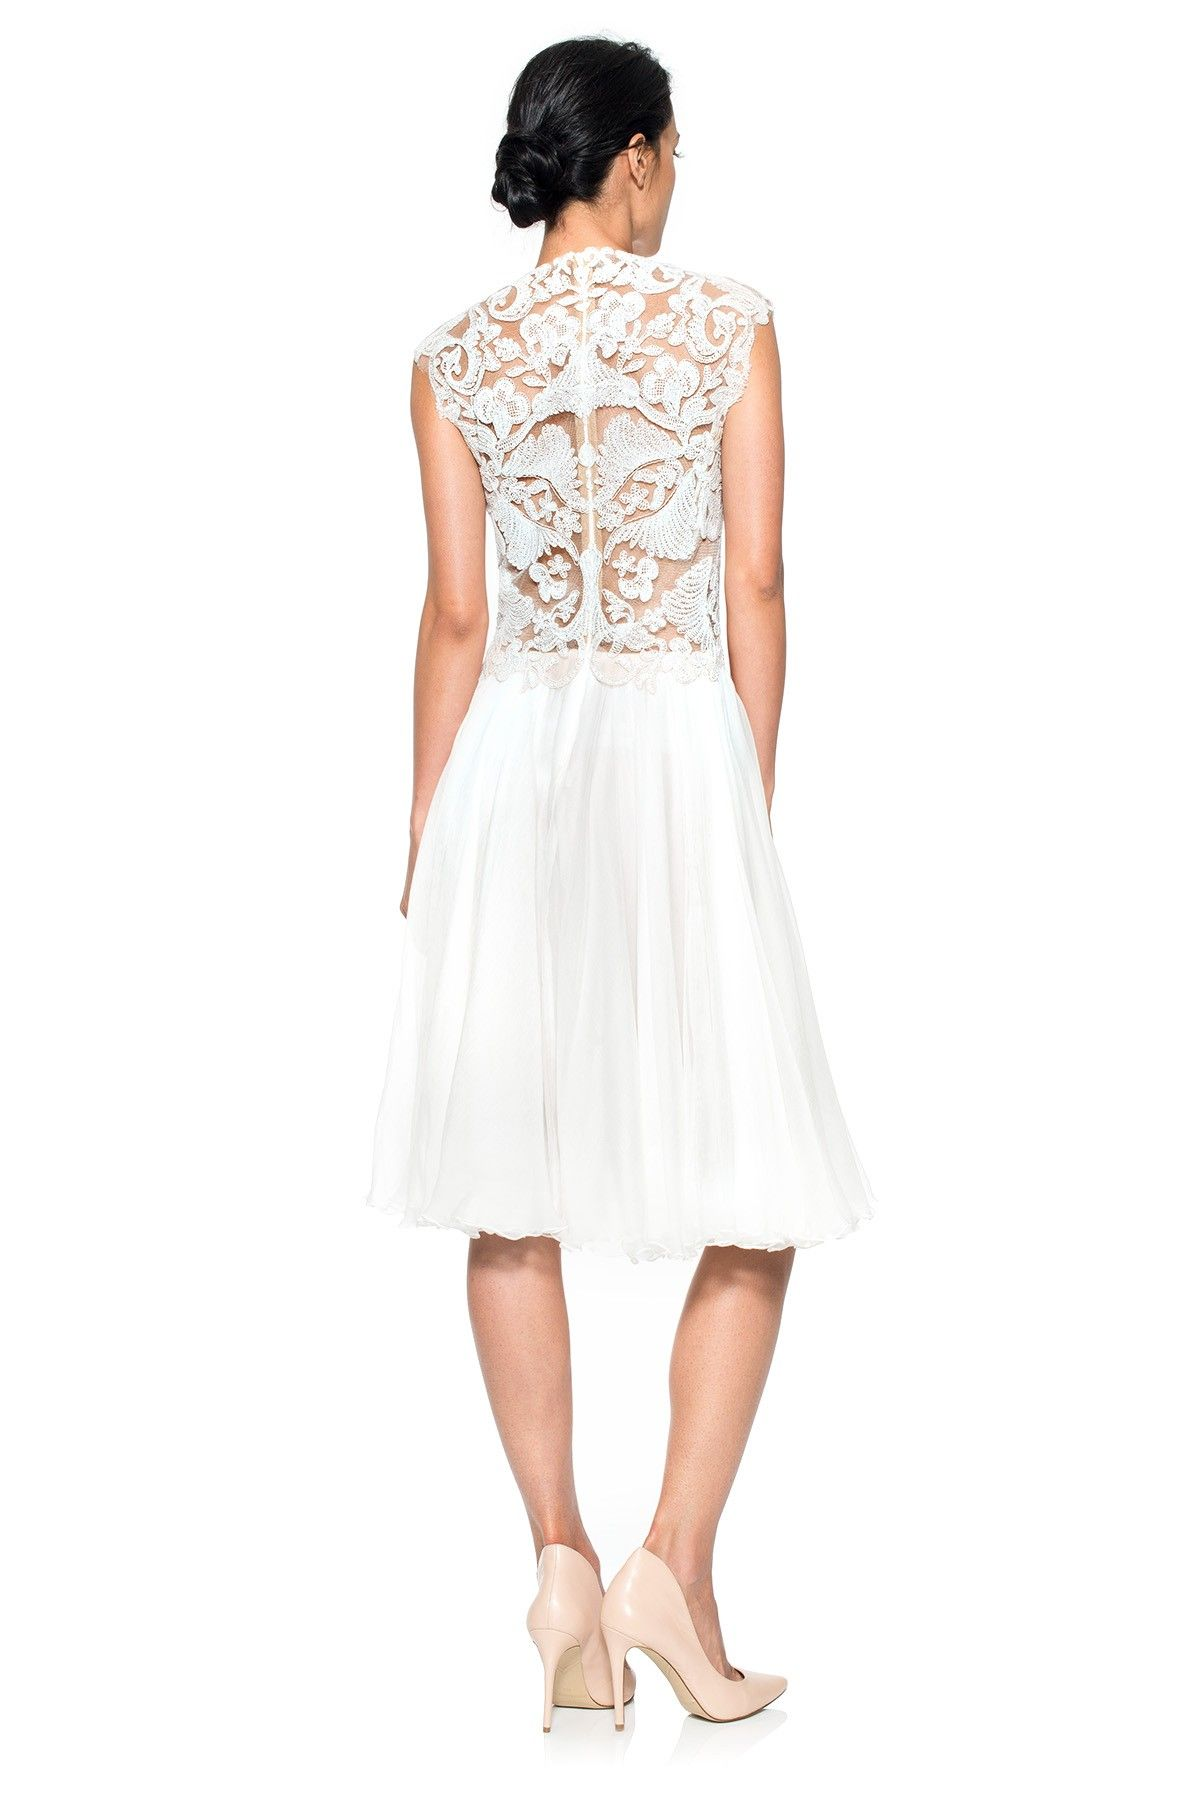 Corded embroidery on tulle and pleated chiffon dress